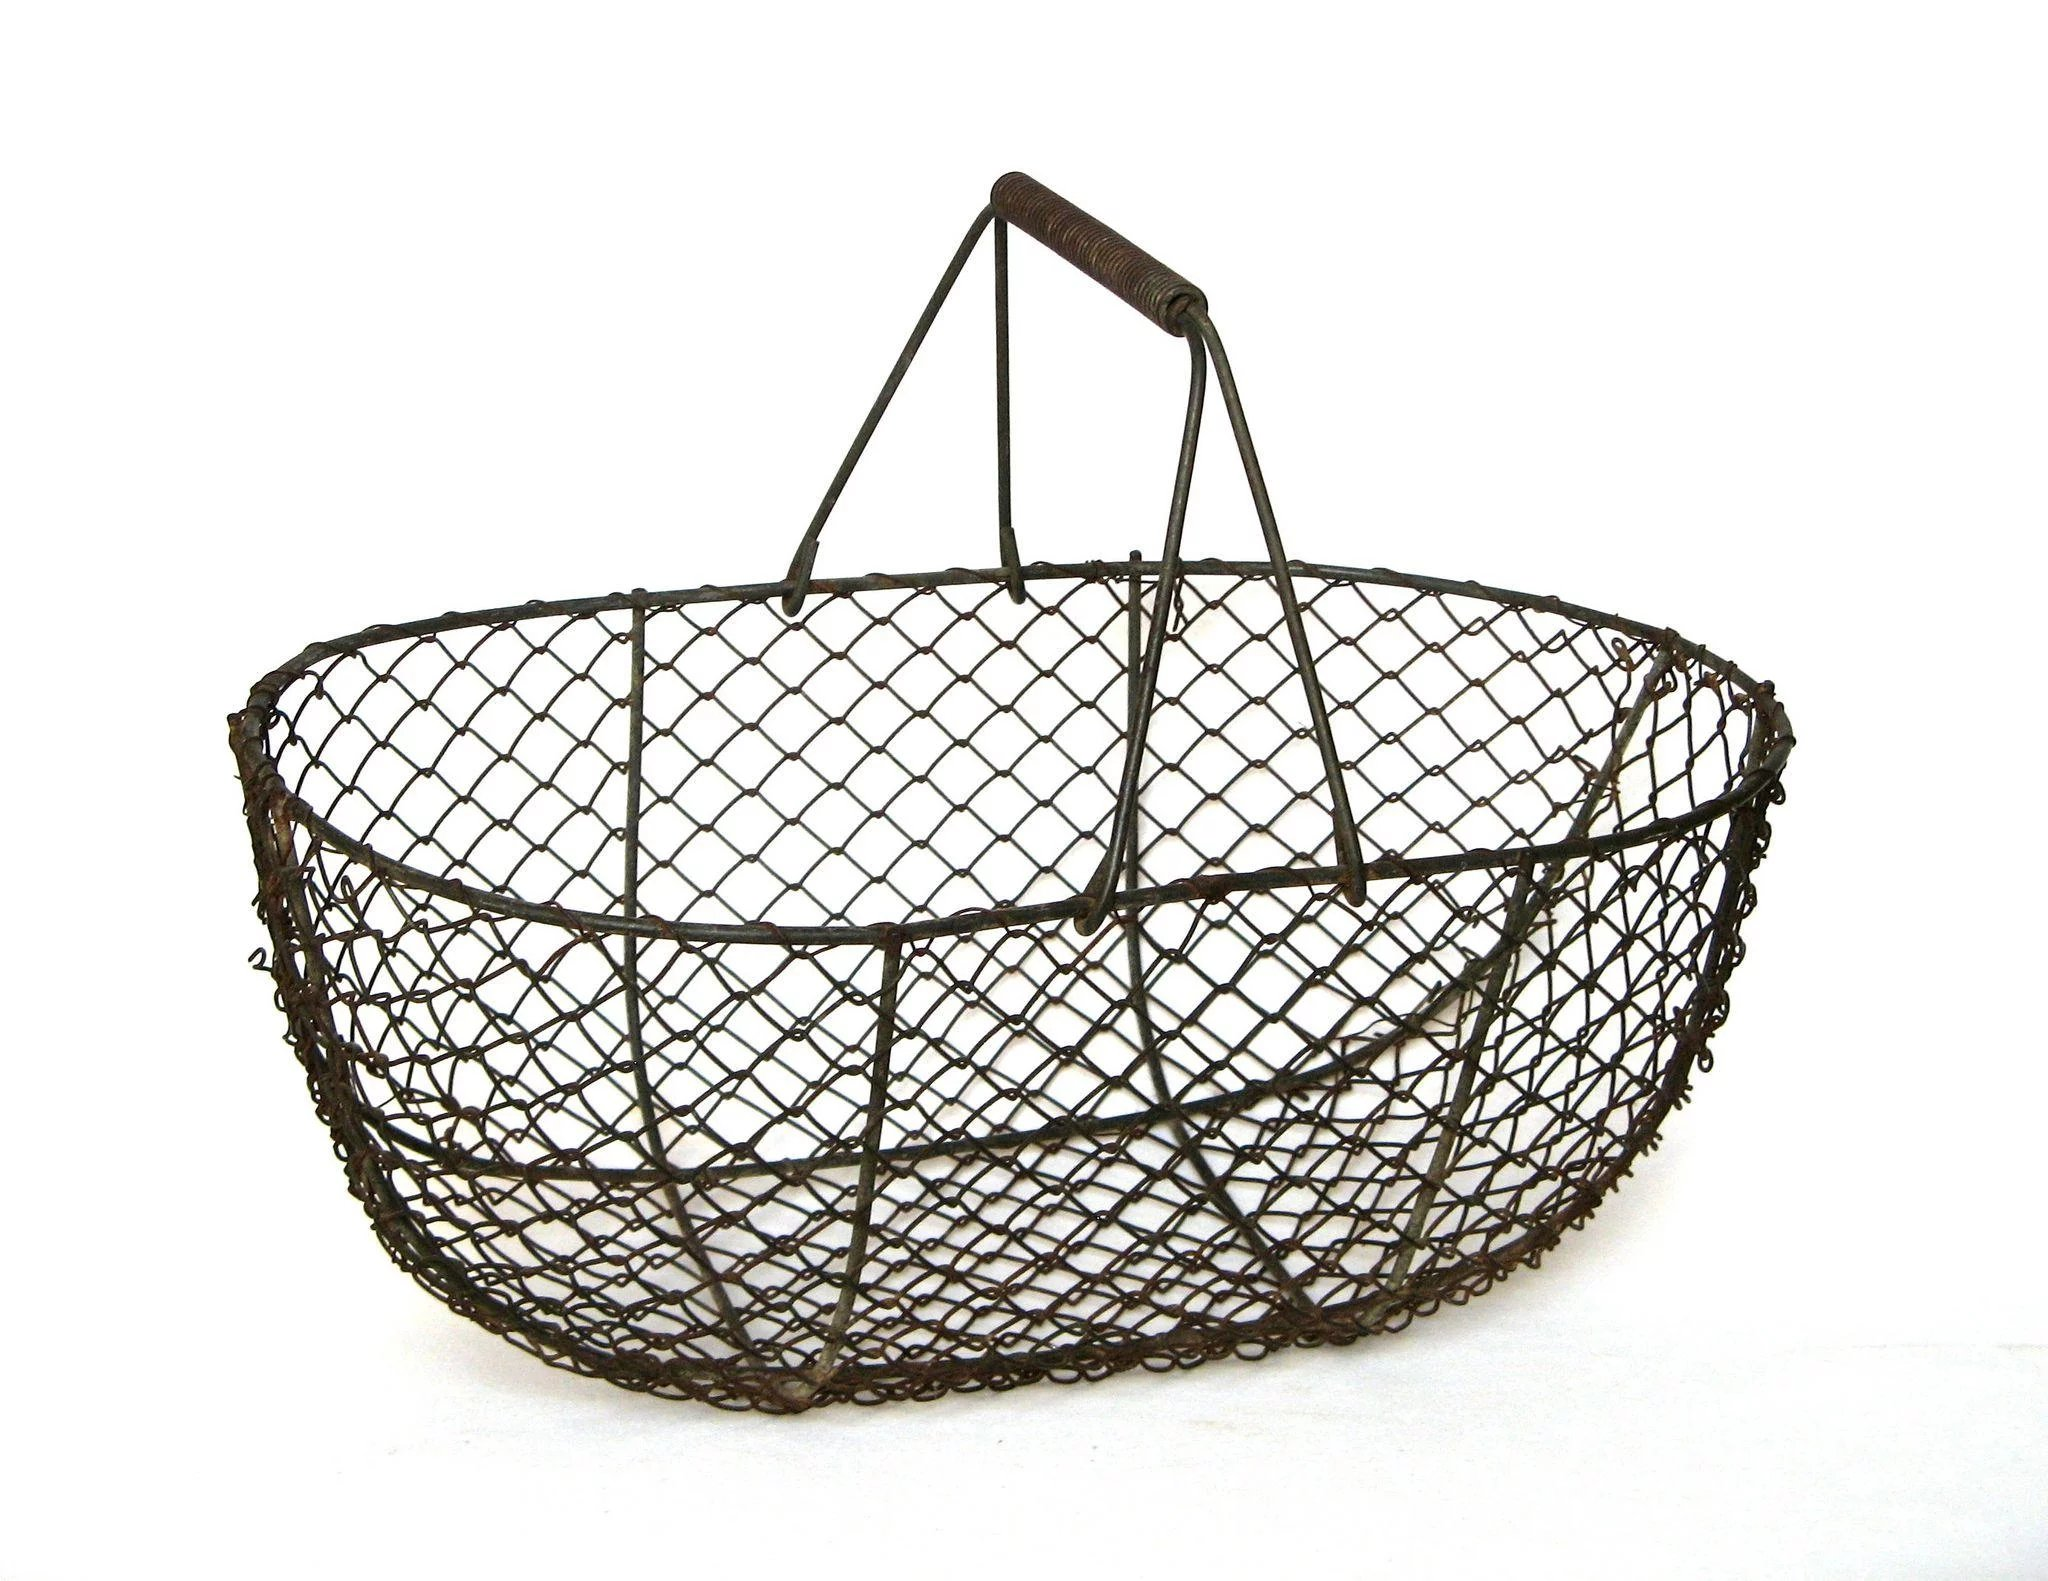 Awesome Wire Trug Ornament - The Wire - magnox.info